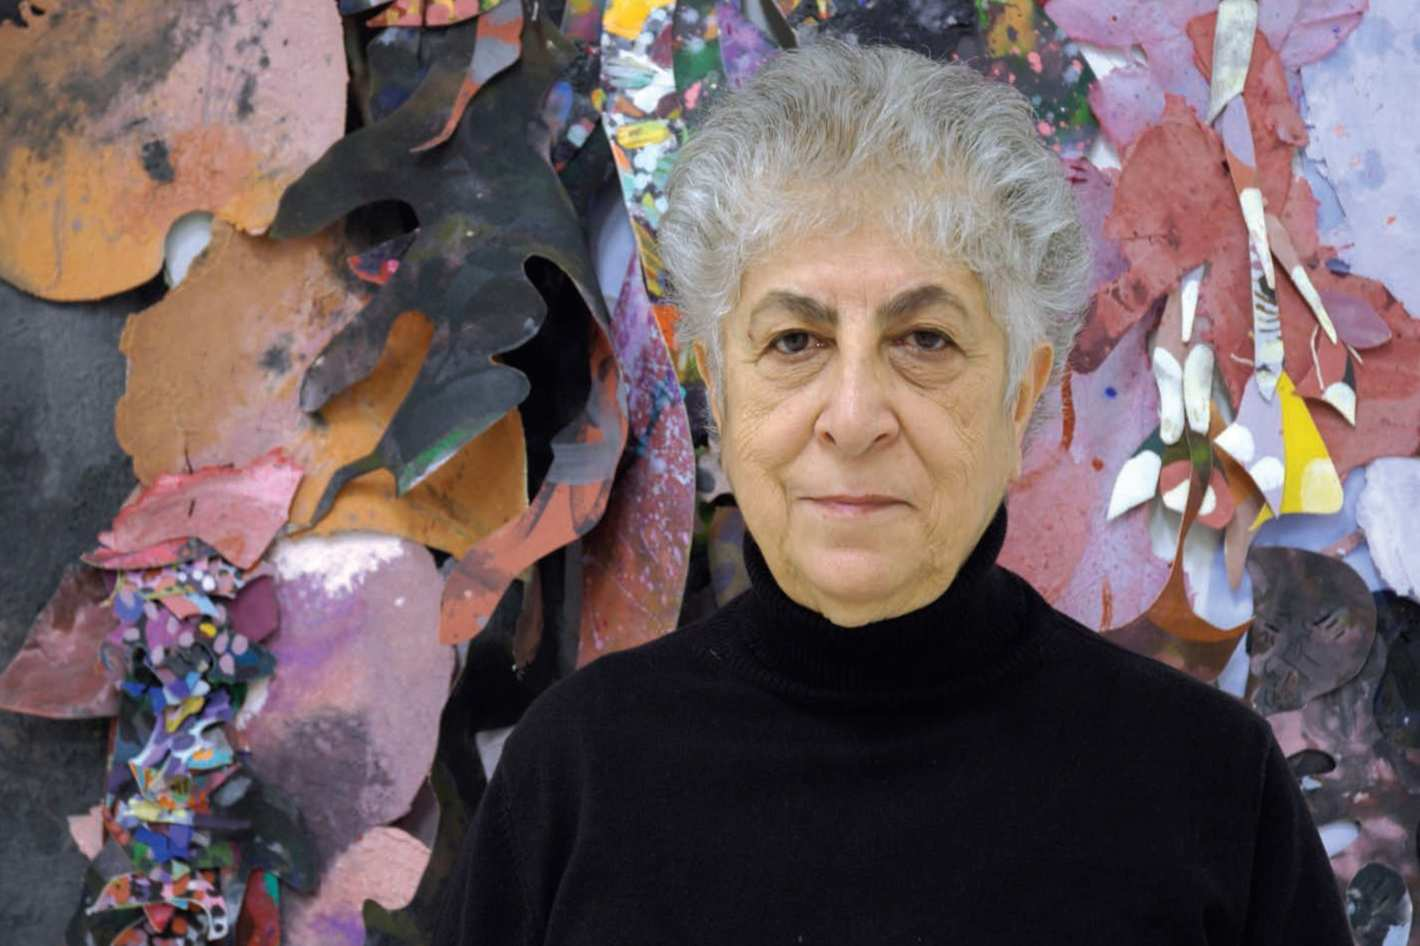 Samia Halaby - First female associate professor at the Yale School of Art